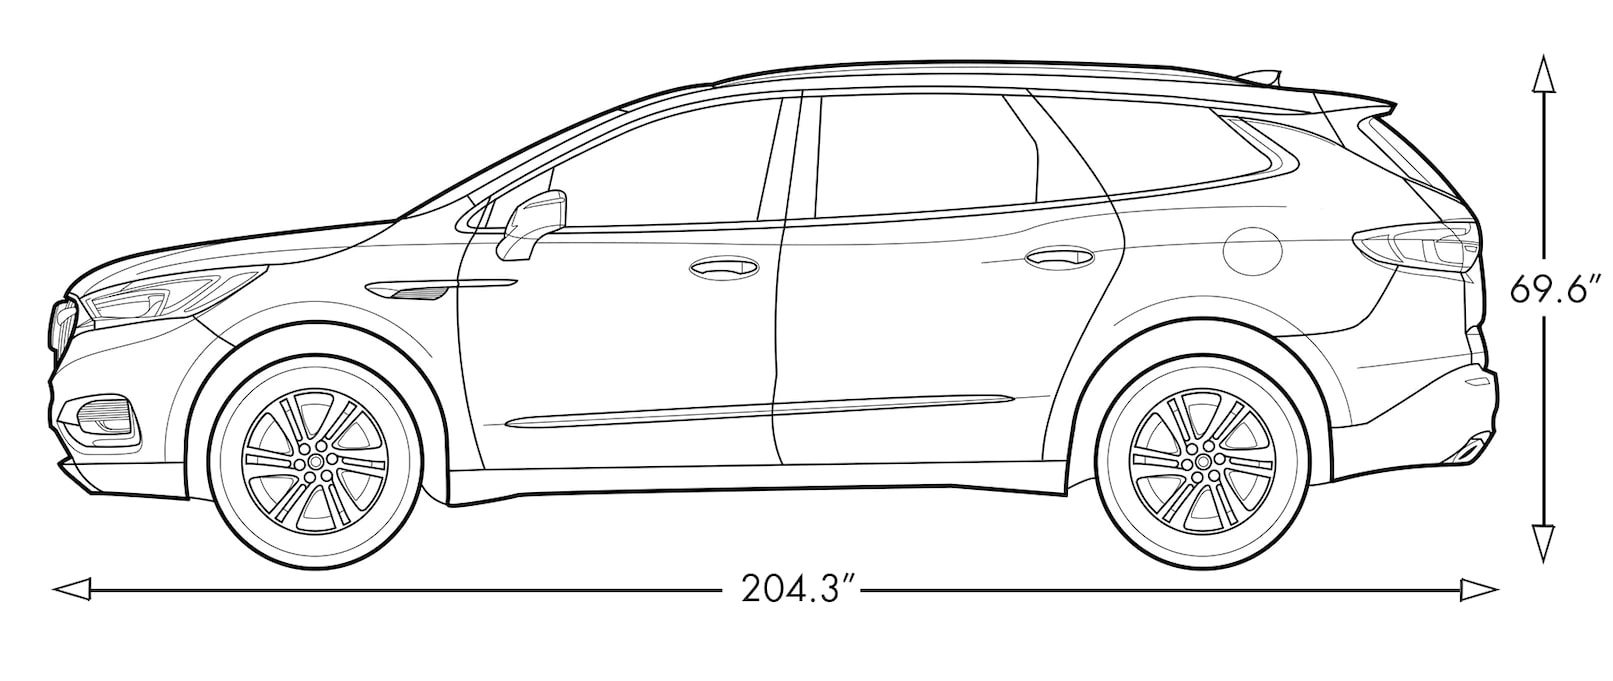 hight resolution of diagram image showing the height and length of the 2019 buick enclave mid size suv